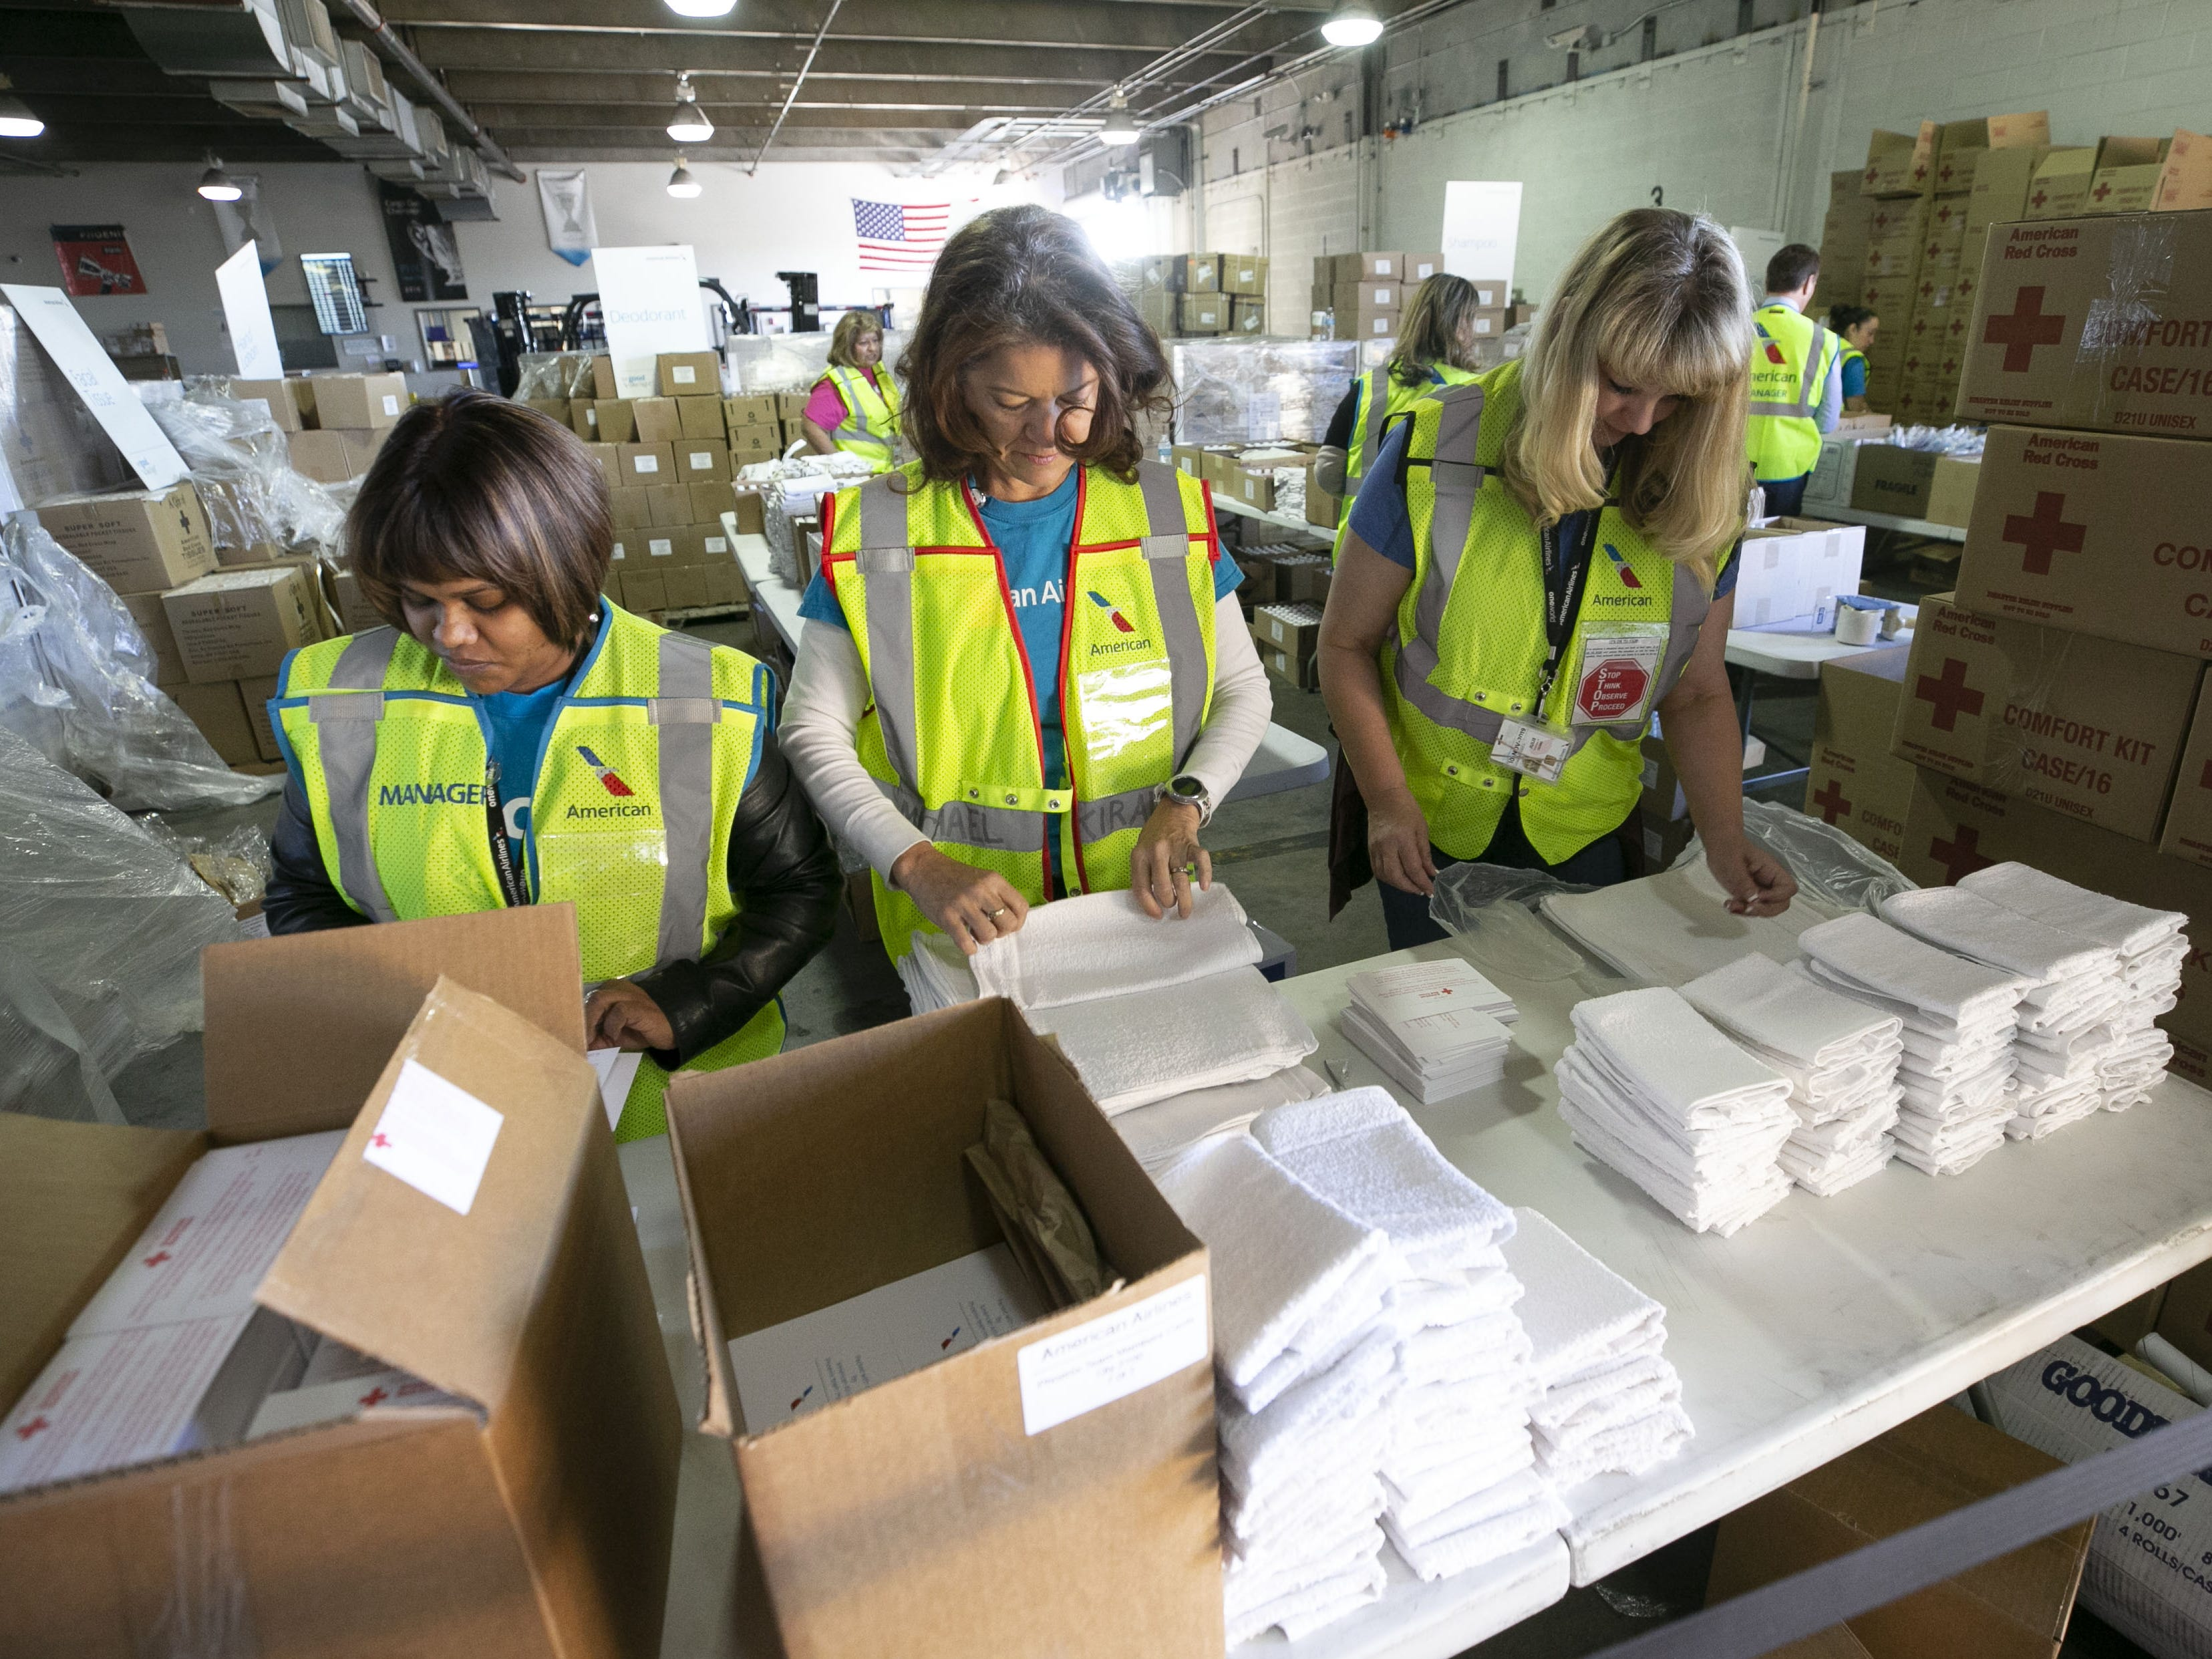 American Airlines employees (from left) Mahbuba Aktar, Carmen Arias-McKinn and Julie Howard, stack wash clothes while packaging amenity kits for the victims of the California wildfires, at the American Airlines cargo facility in Phoenix on Tuesday, Nov. 27, 2018.